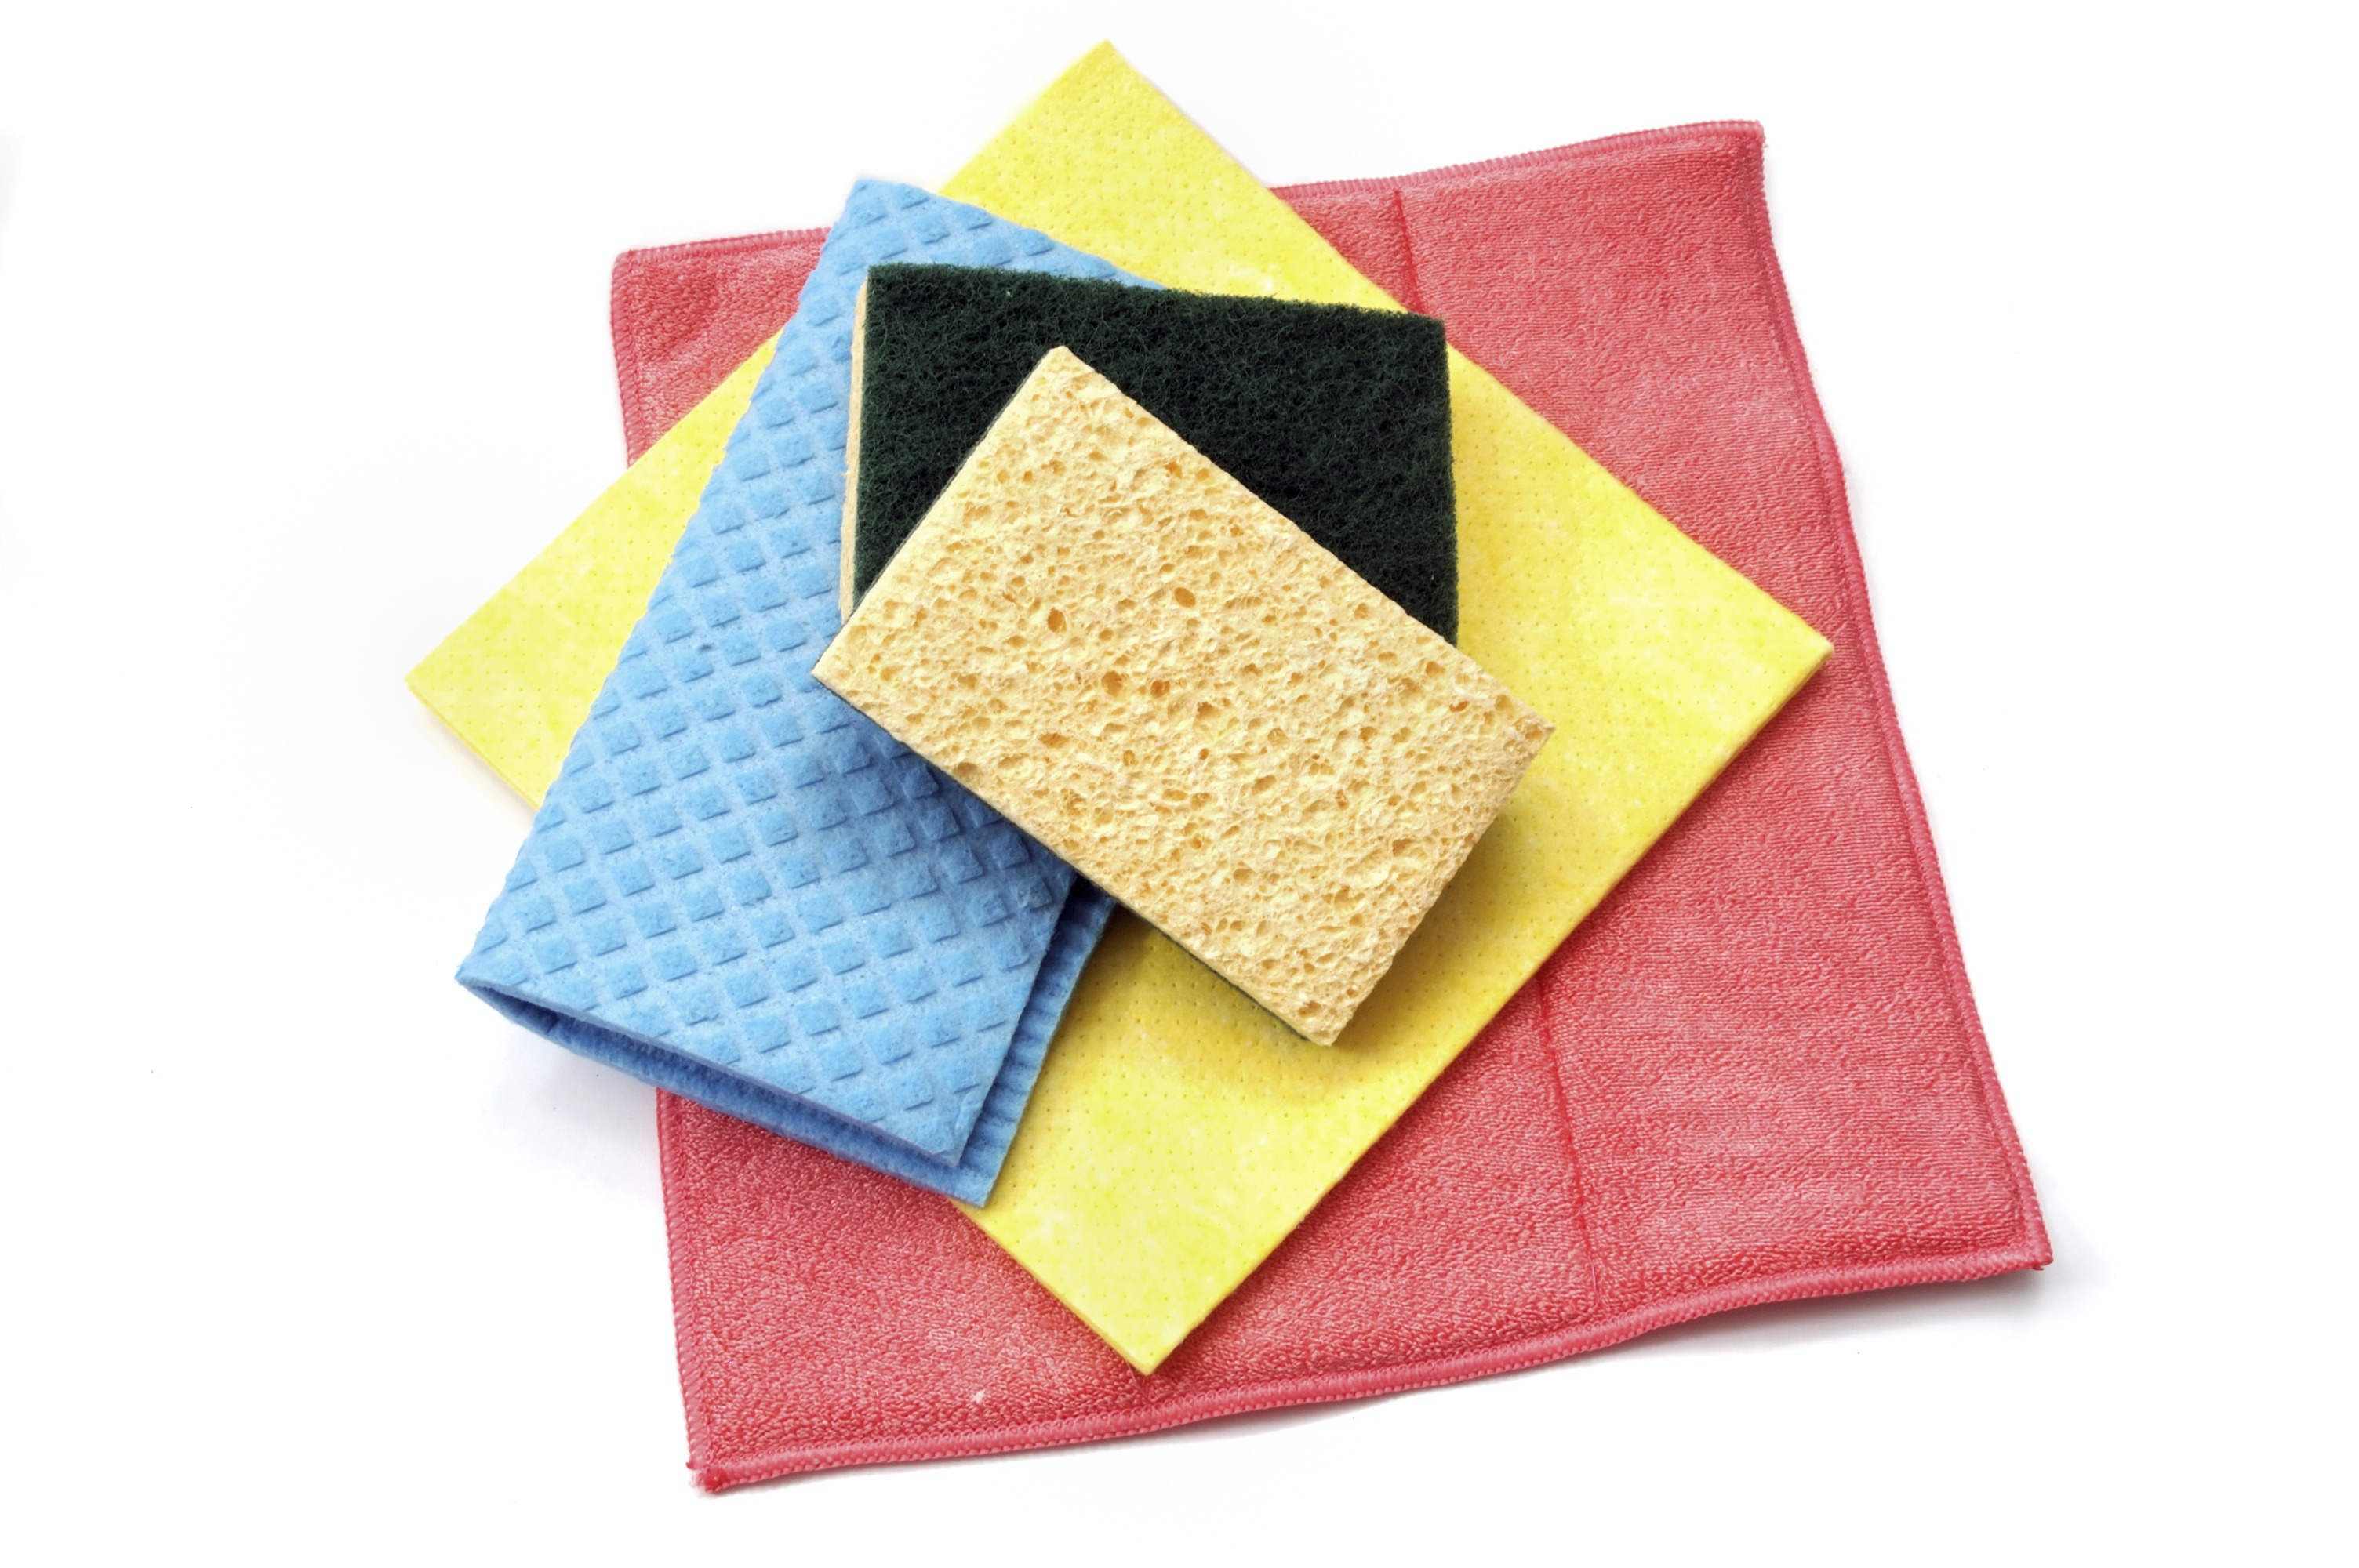 Cleaning Cloths -iStock_000004022178_Large